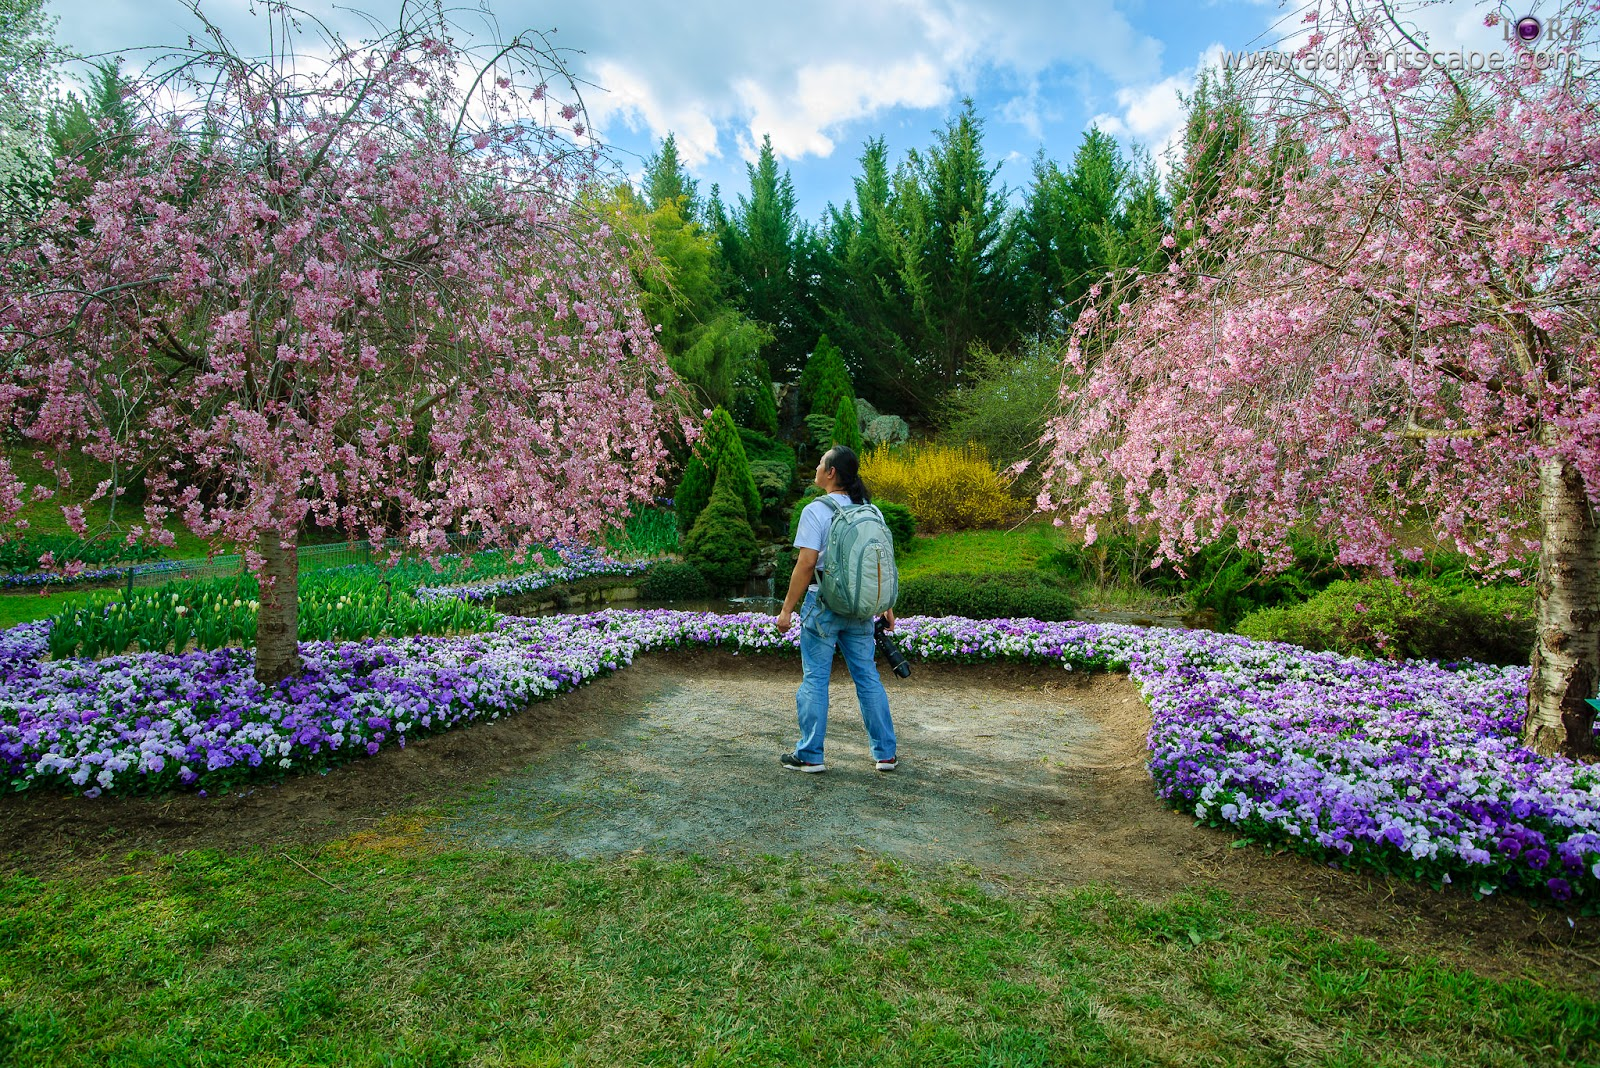 Philip Avellana, adventscape, iori, Tulip Top Gardens, garden, spring, NSW, New South Wales, Sutton, Old Federal Highway, Bywong, 2621, fountain